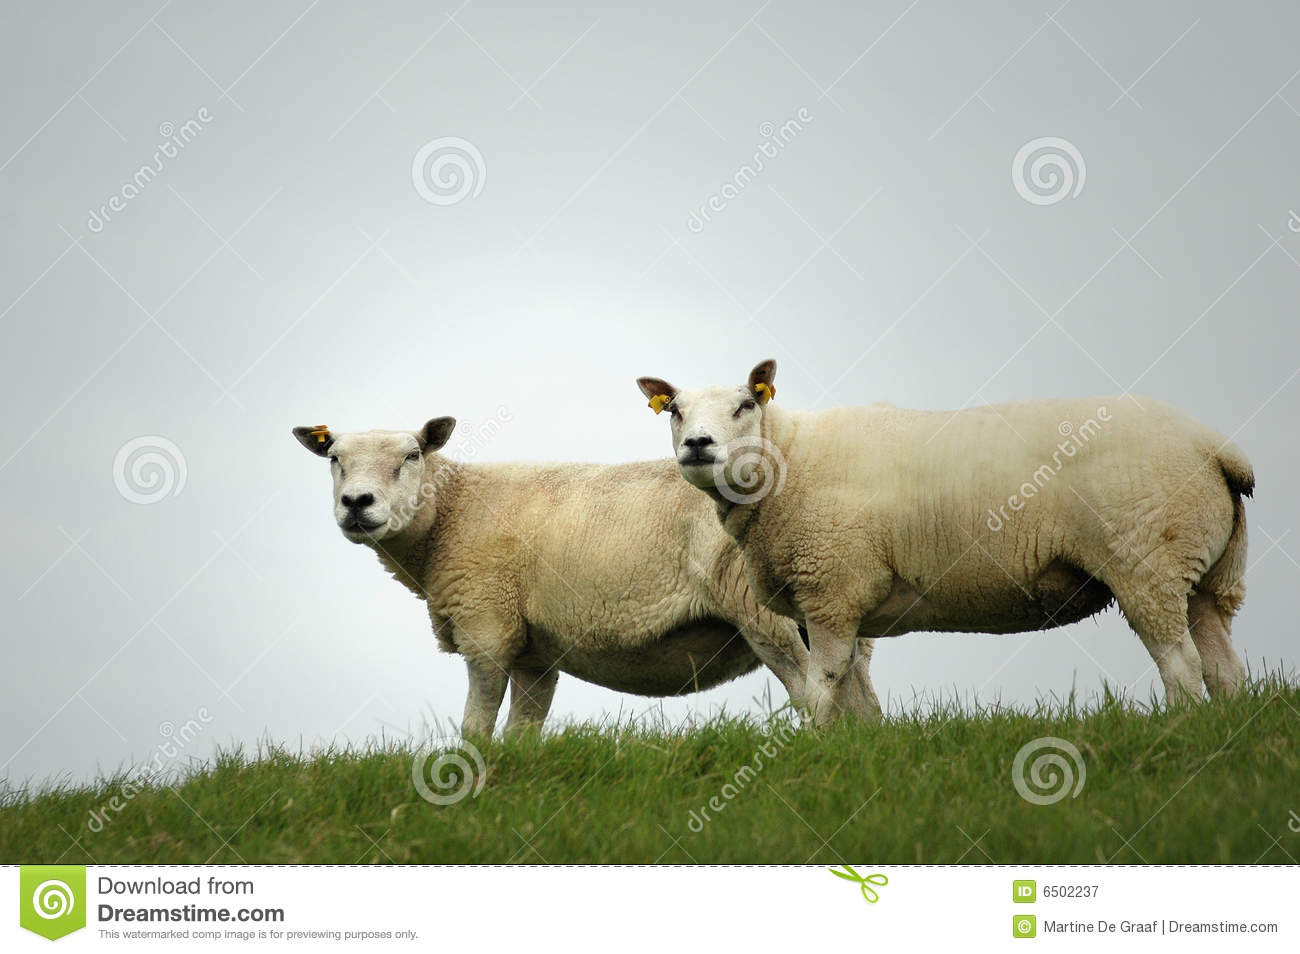 Two Sheep on a